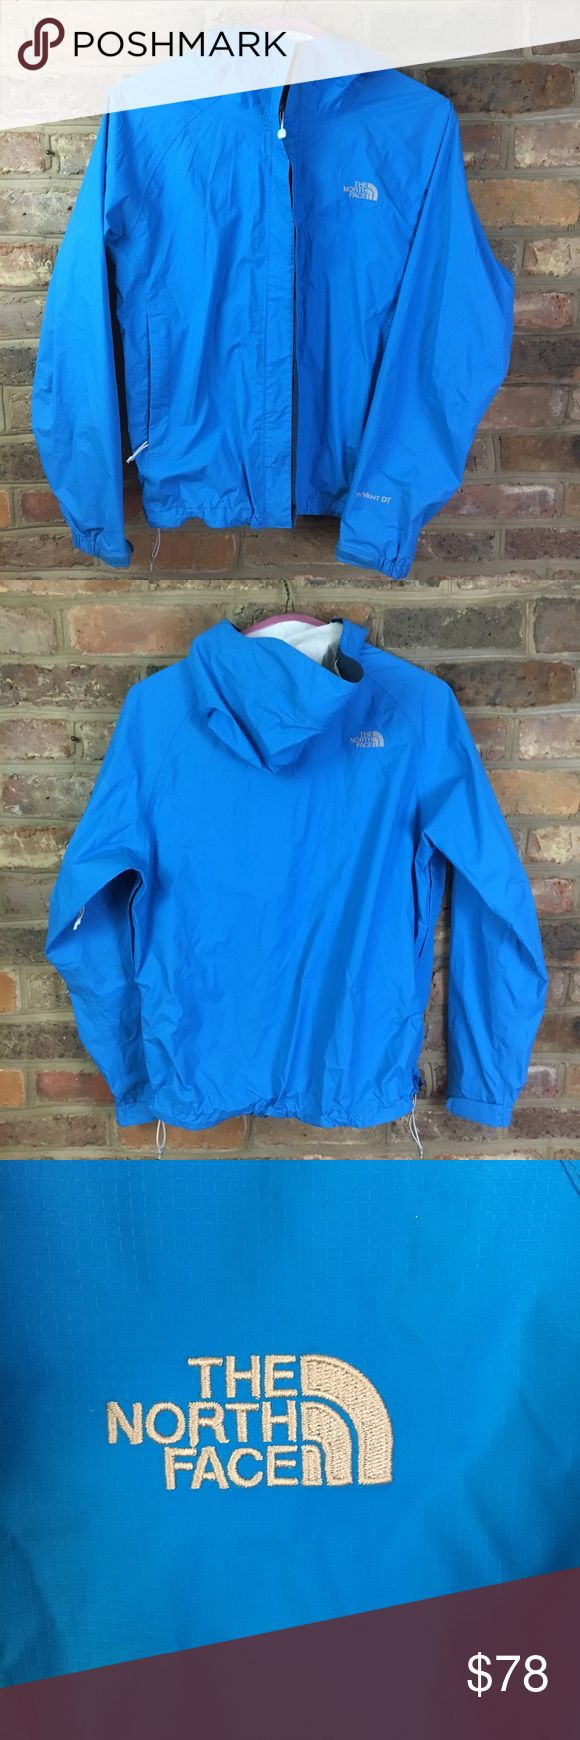 Women's North Face Blue Windbreaker Worn a few times  Perfect condition  No sign of wear that I can see  This blue is gorgeous on anyone! The North Face Jackets & Coats